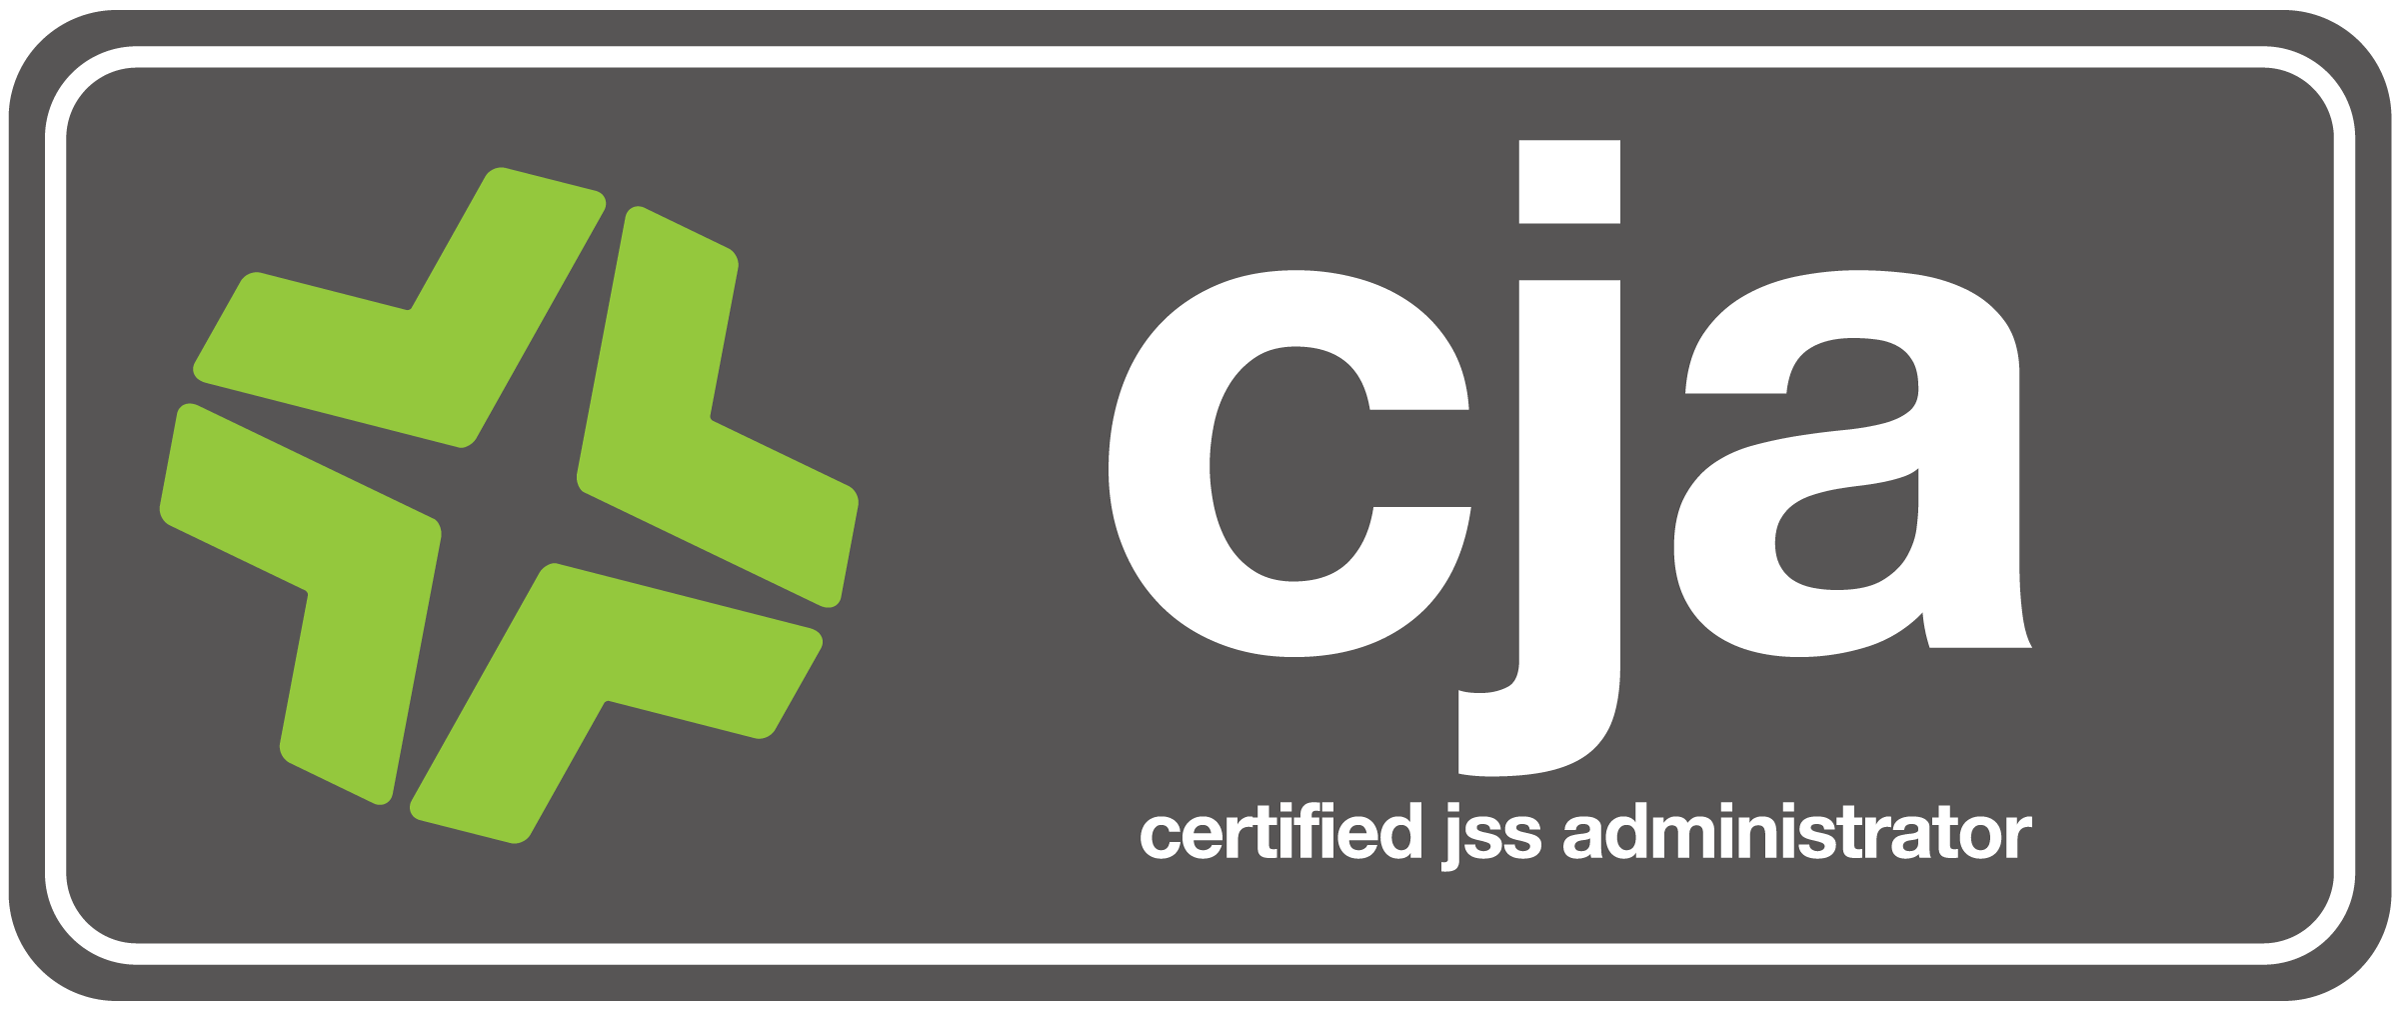 certified jss administrator 2400 1011 s 1476387643